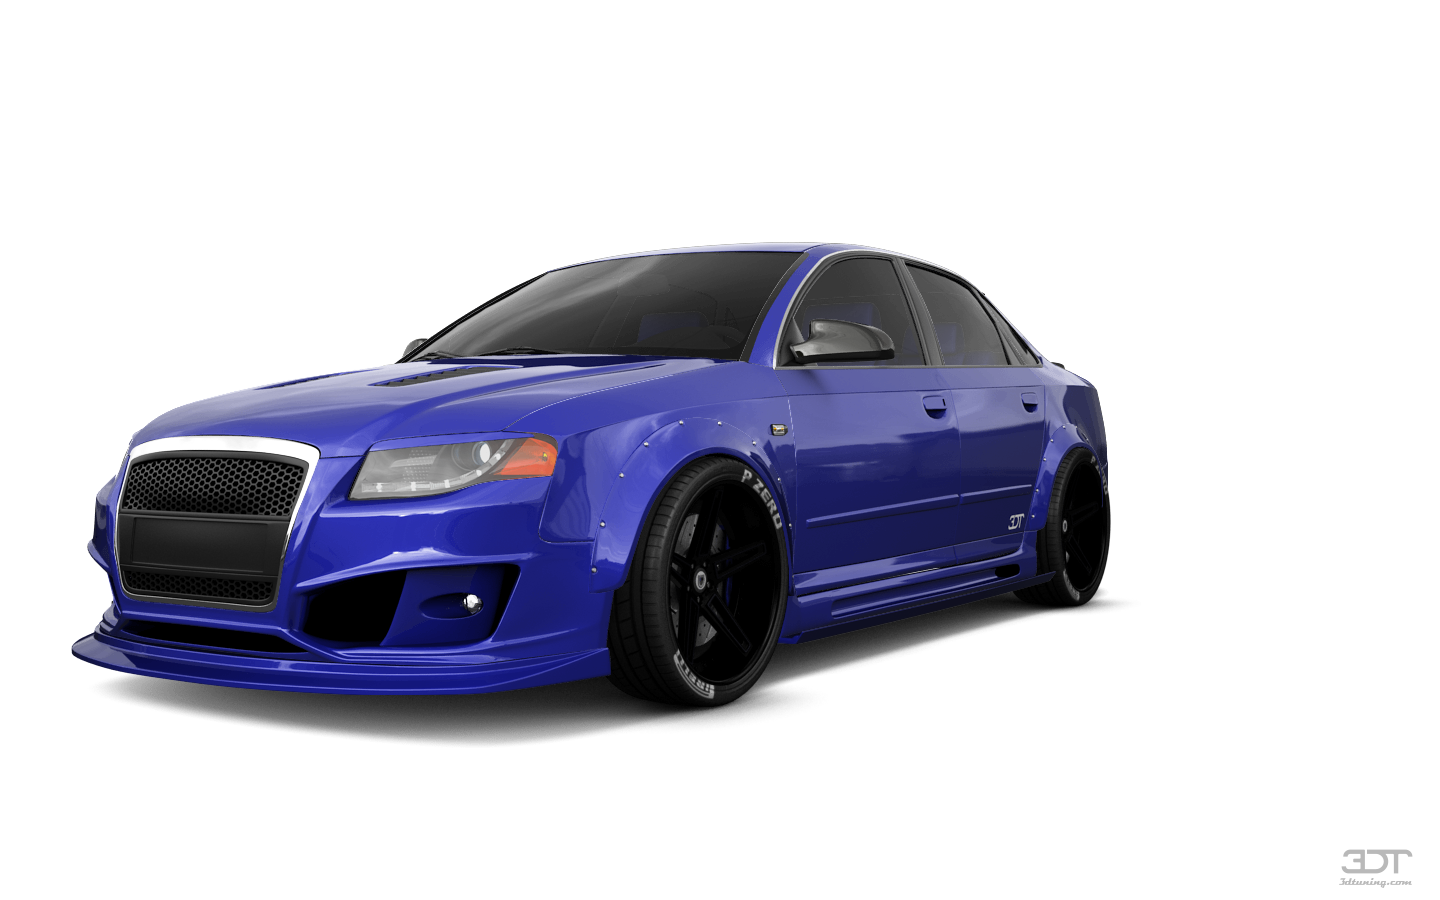 Audi A4 4 Door Saloon 2004 tuning